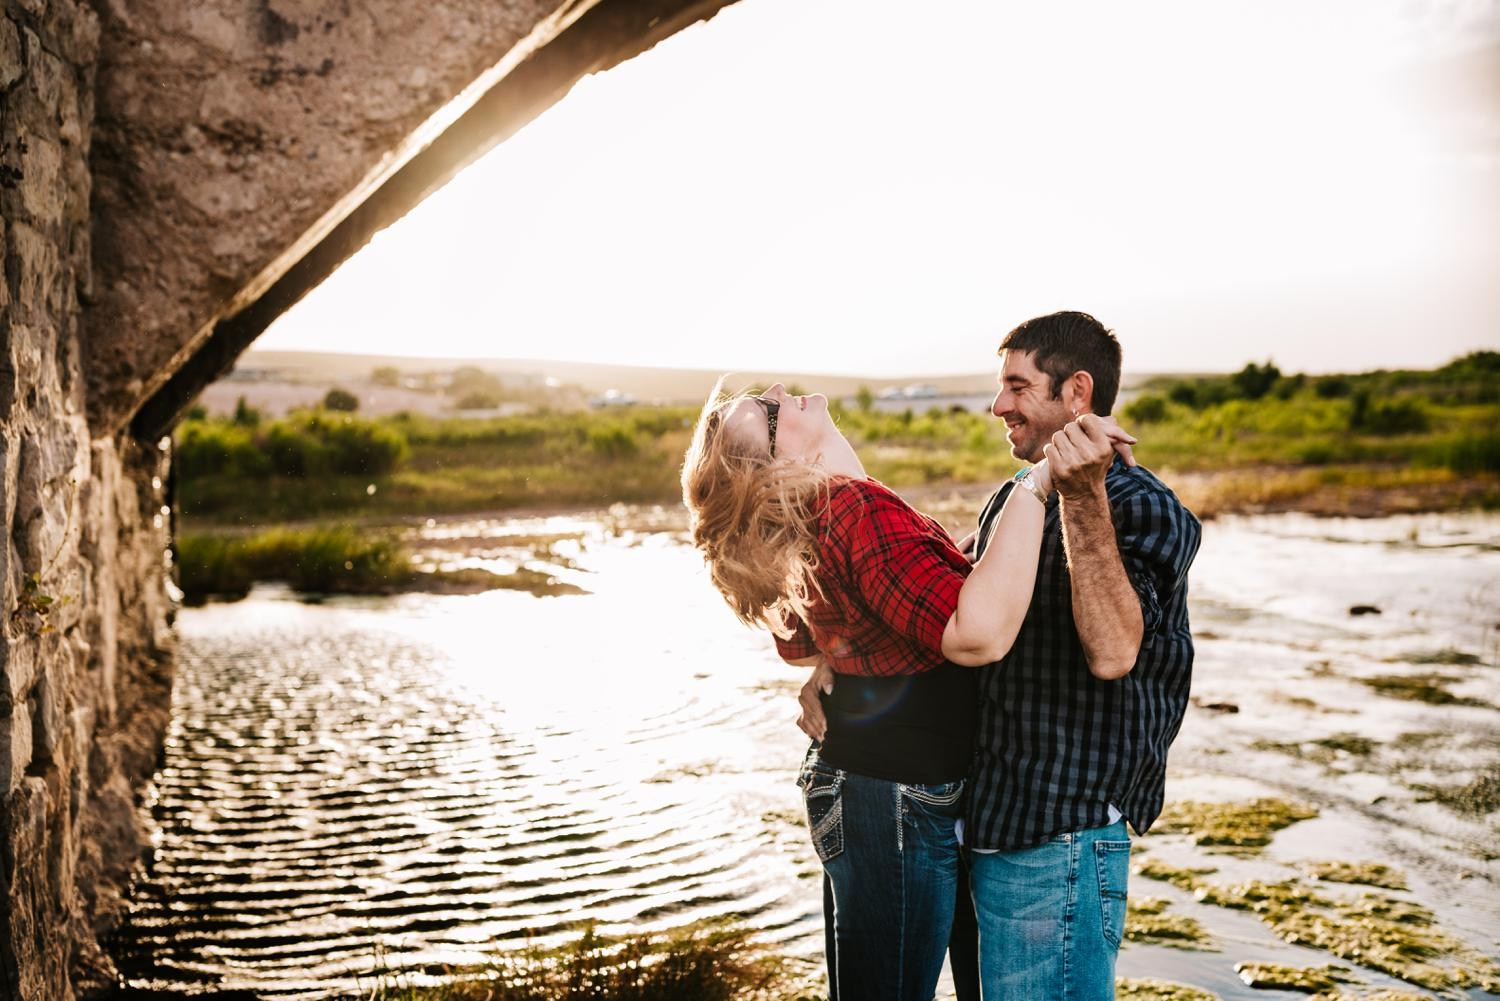 6. adventurous-new-mexico-fun-carlsbad-new-mexico-flumes-engagement-wedding-photographer-natural-andrea-van-orsouw-photography2.jpg